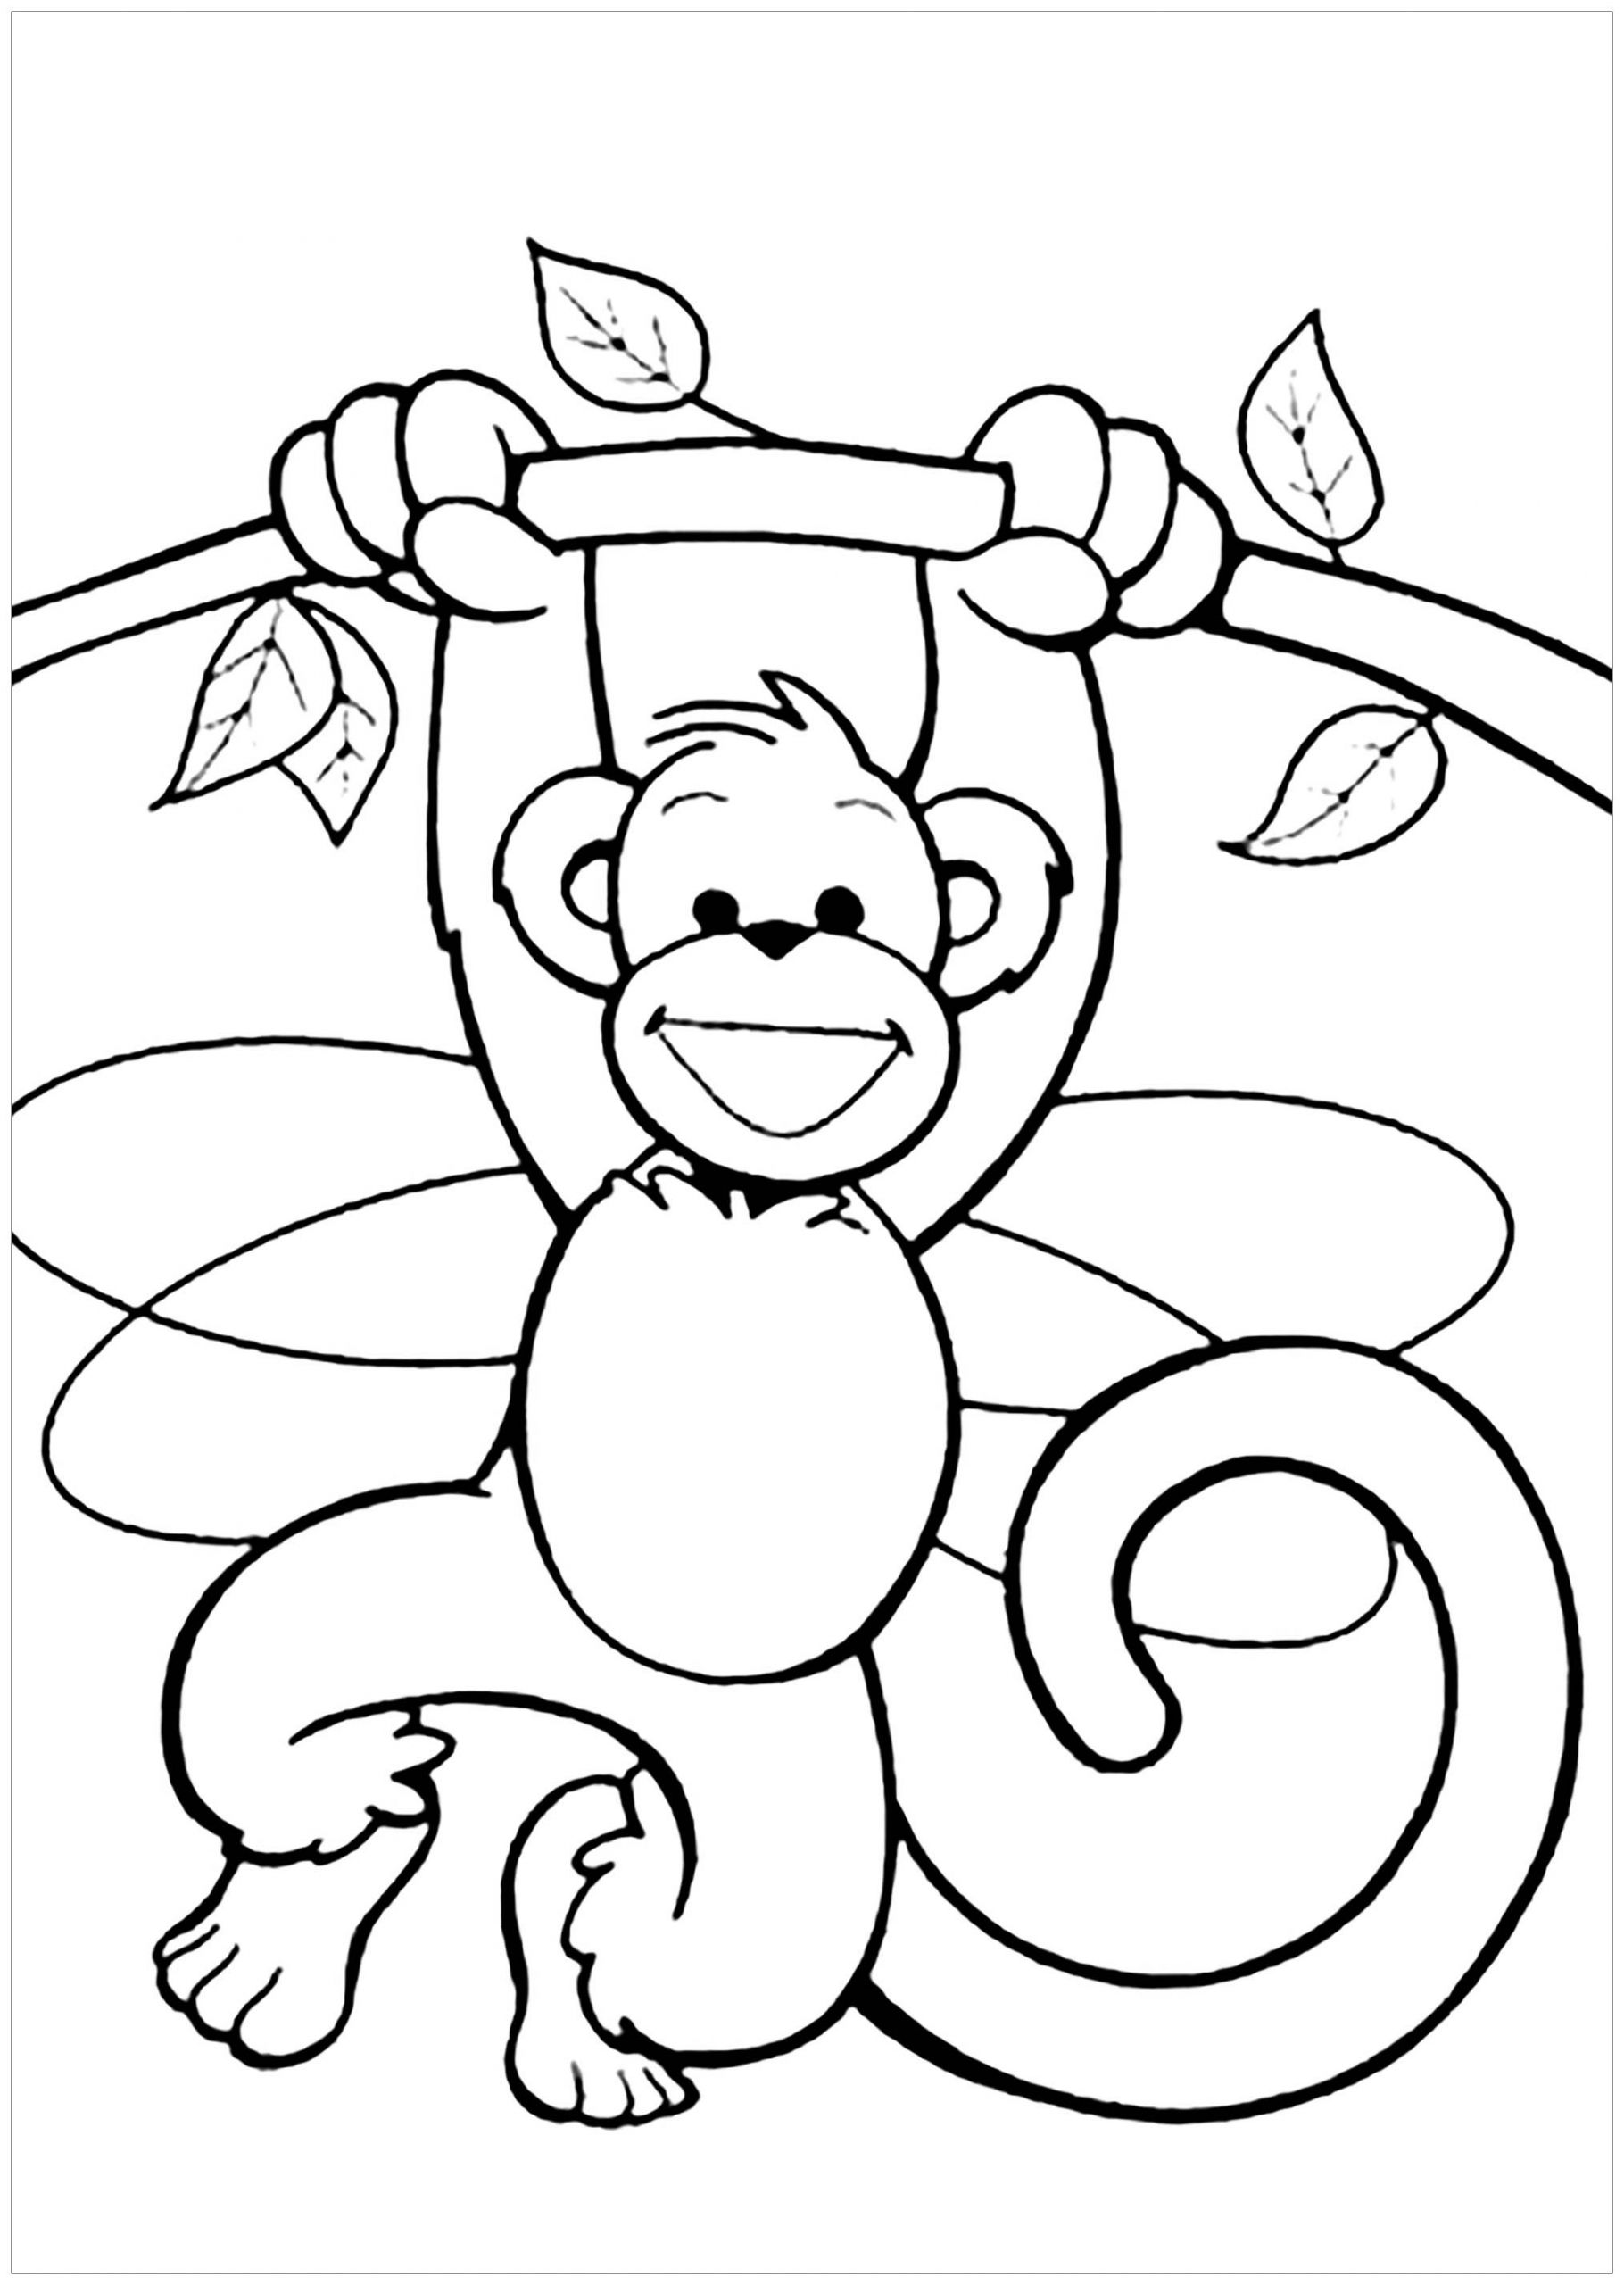 Coloring Kids  Monkeys to for free Monkeys Kids Coloring Pages